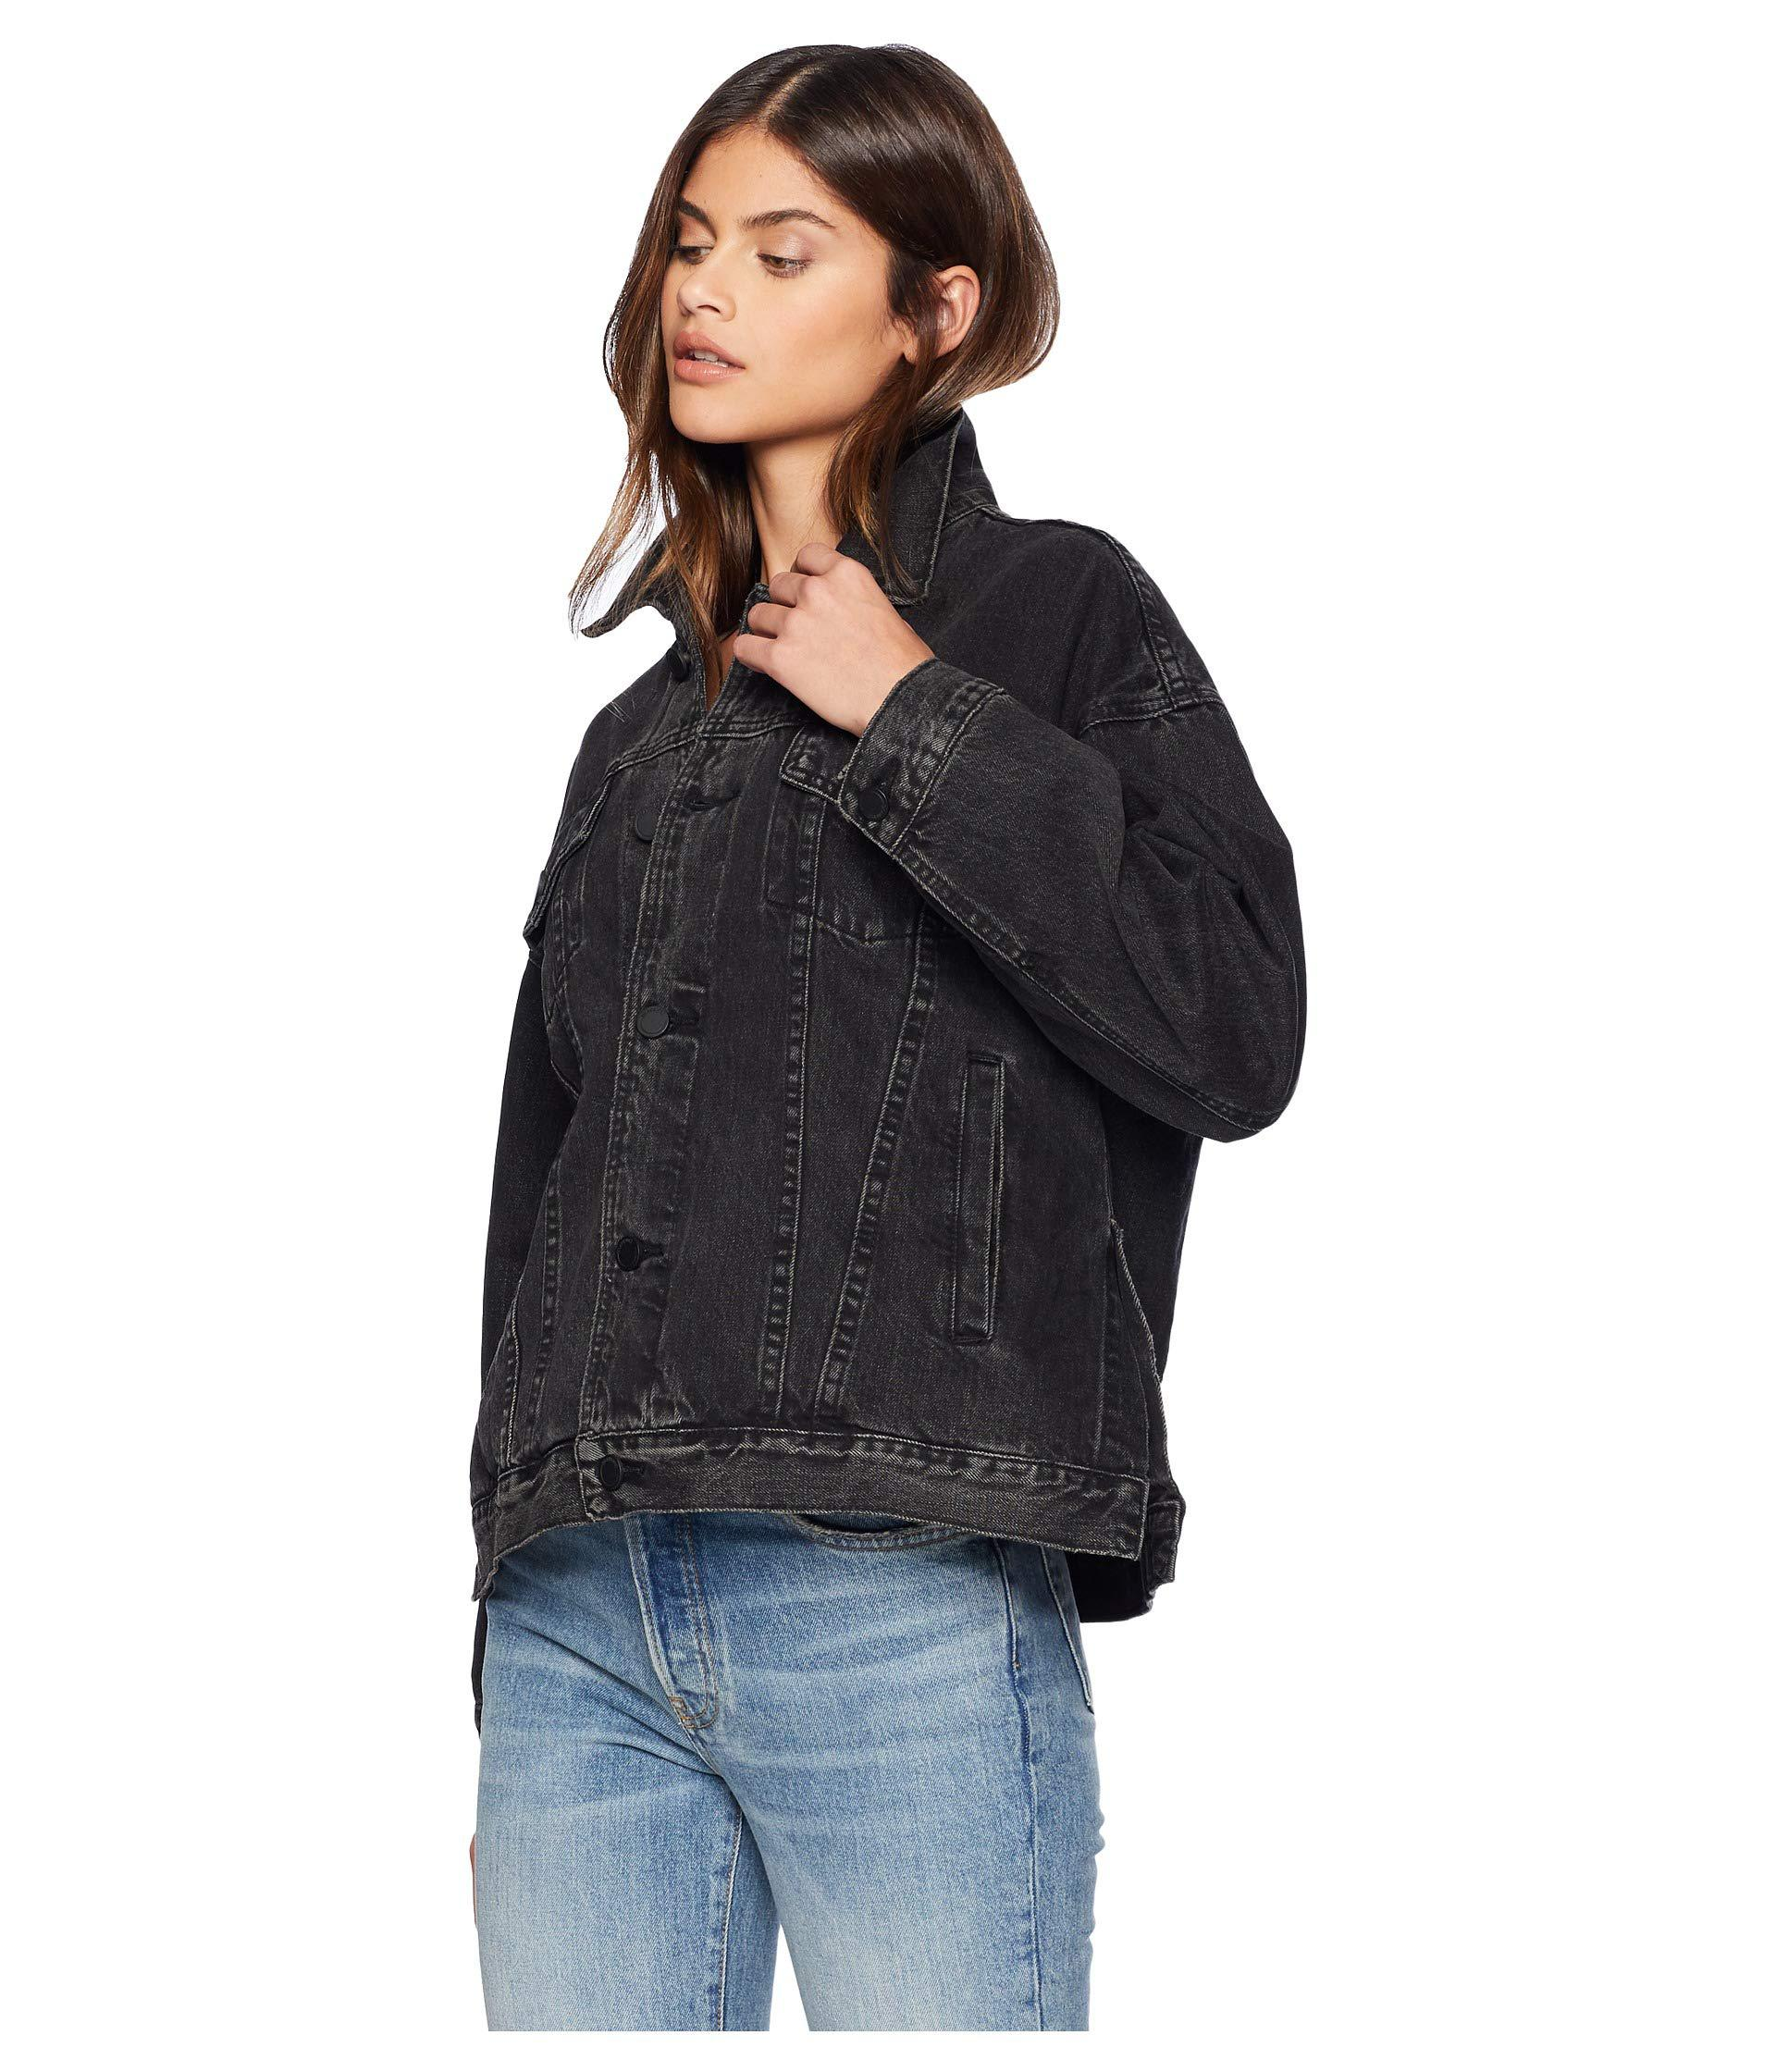 Lyst - Blank NYC Trucker Jacket In Dirty Harry in Black - Save 23% f666e5956